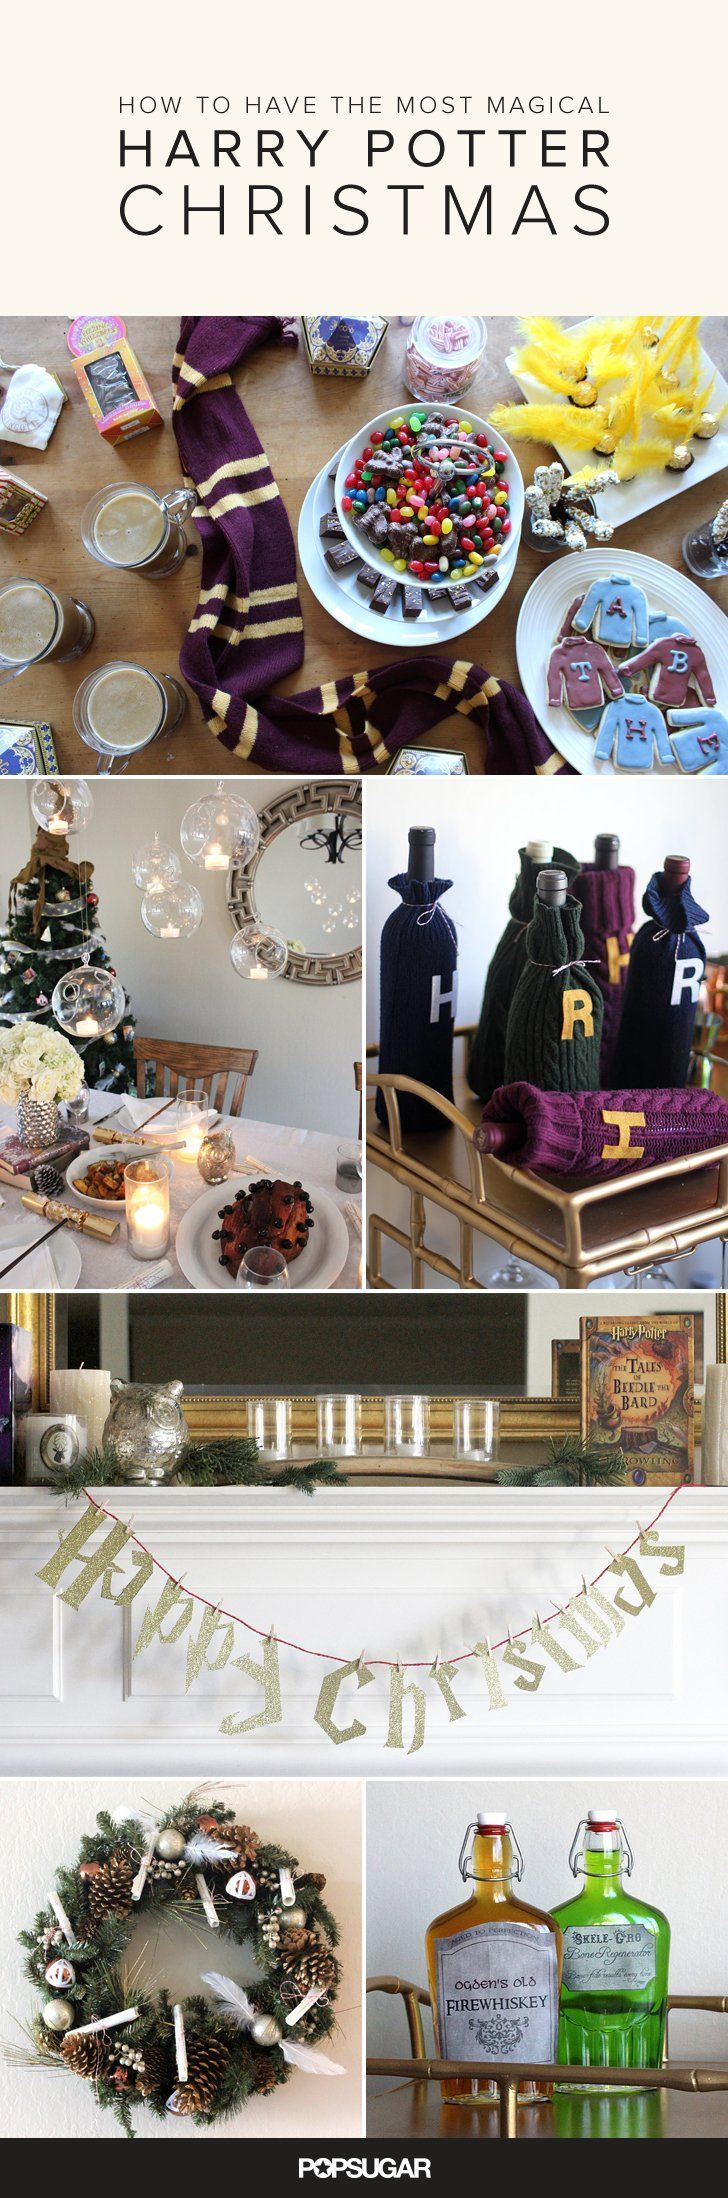 How to Have the Most Magical Harry Potter Christmas